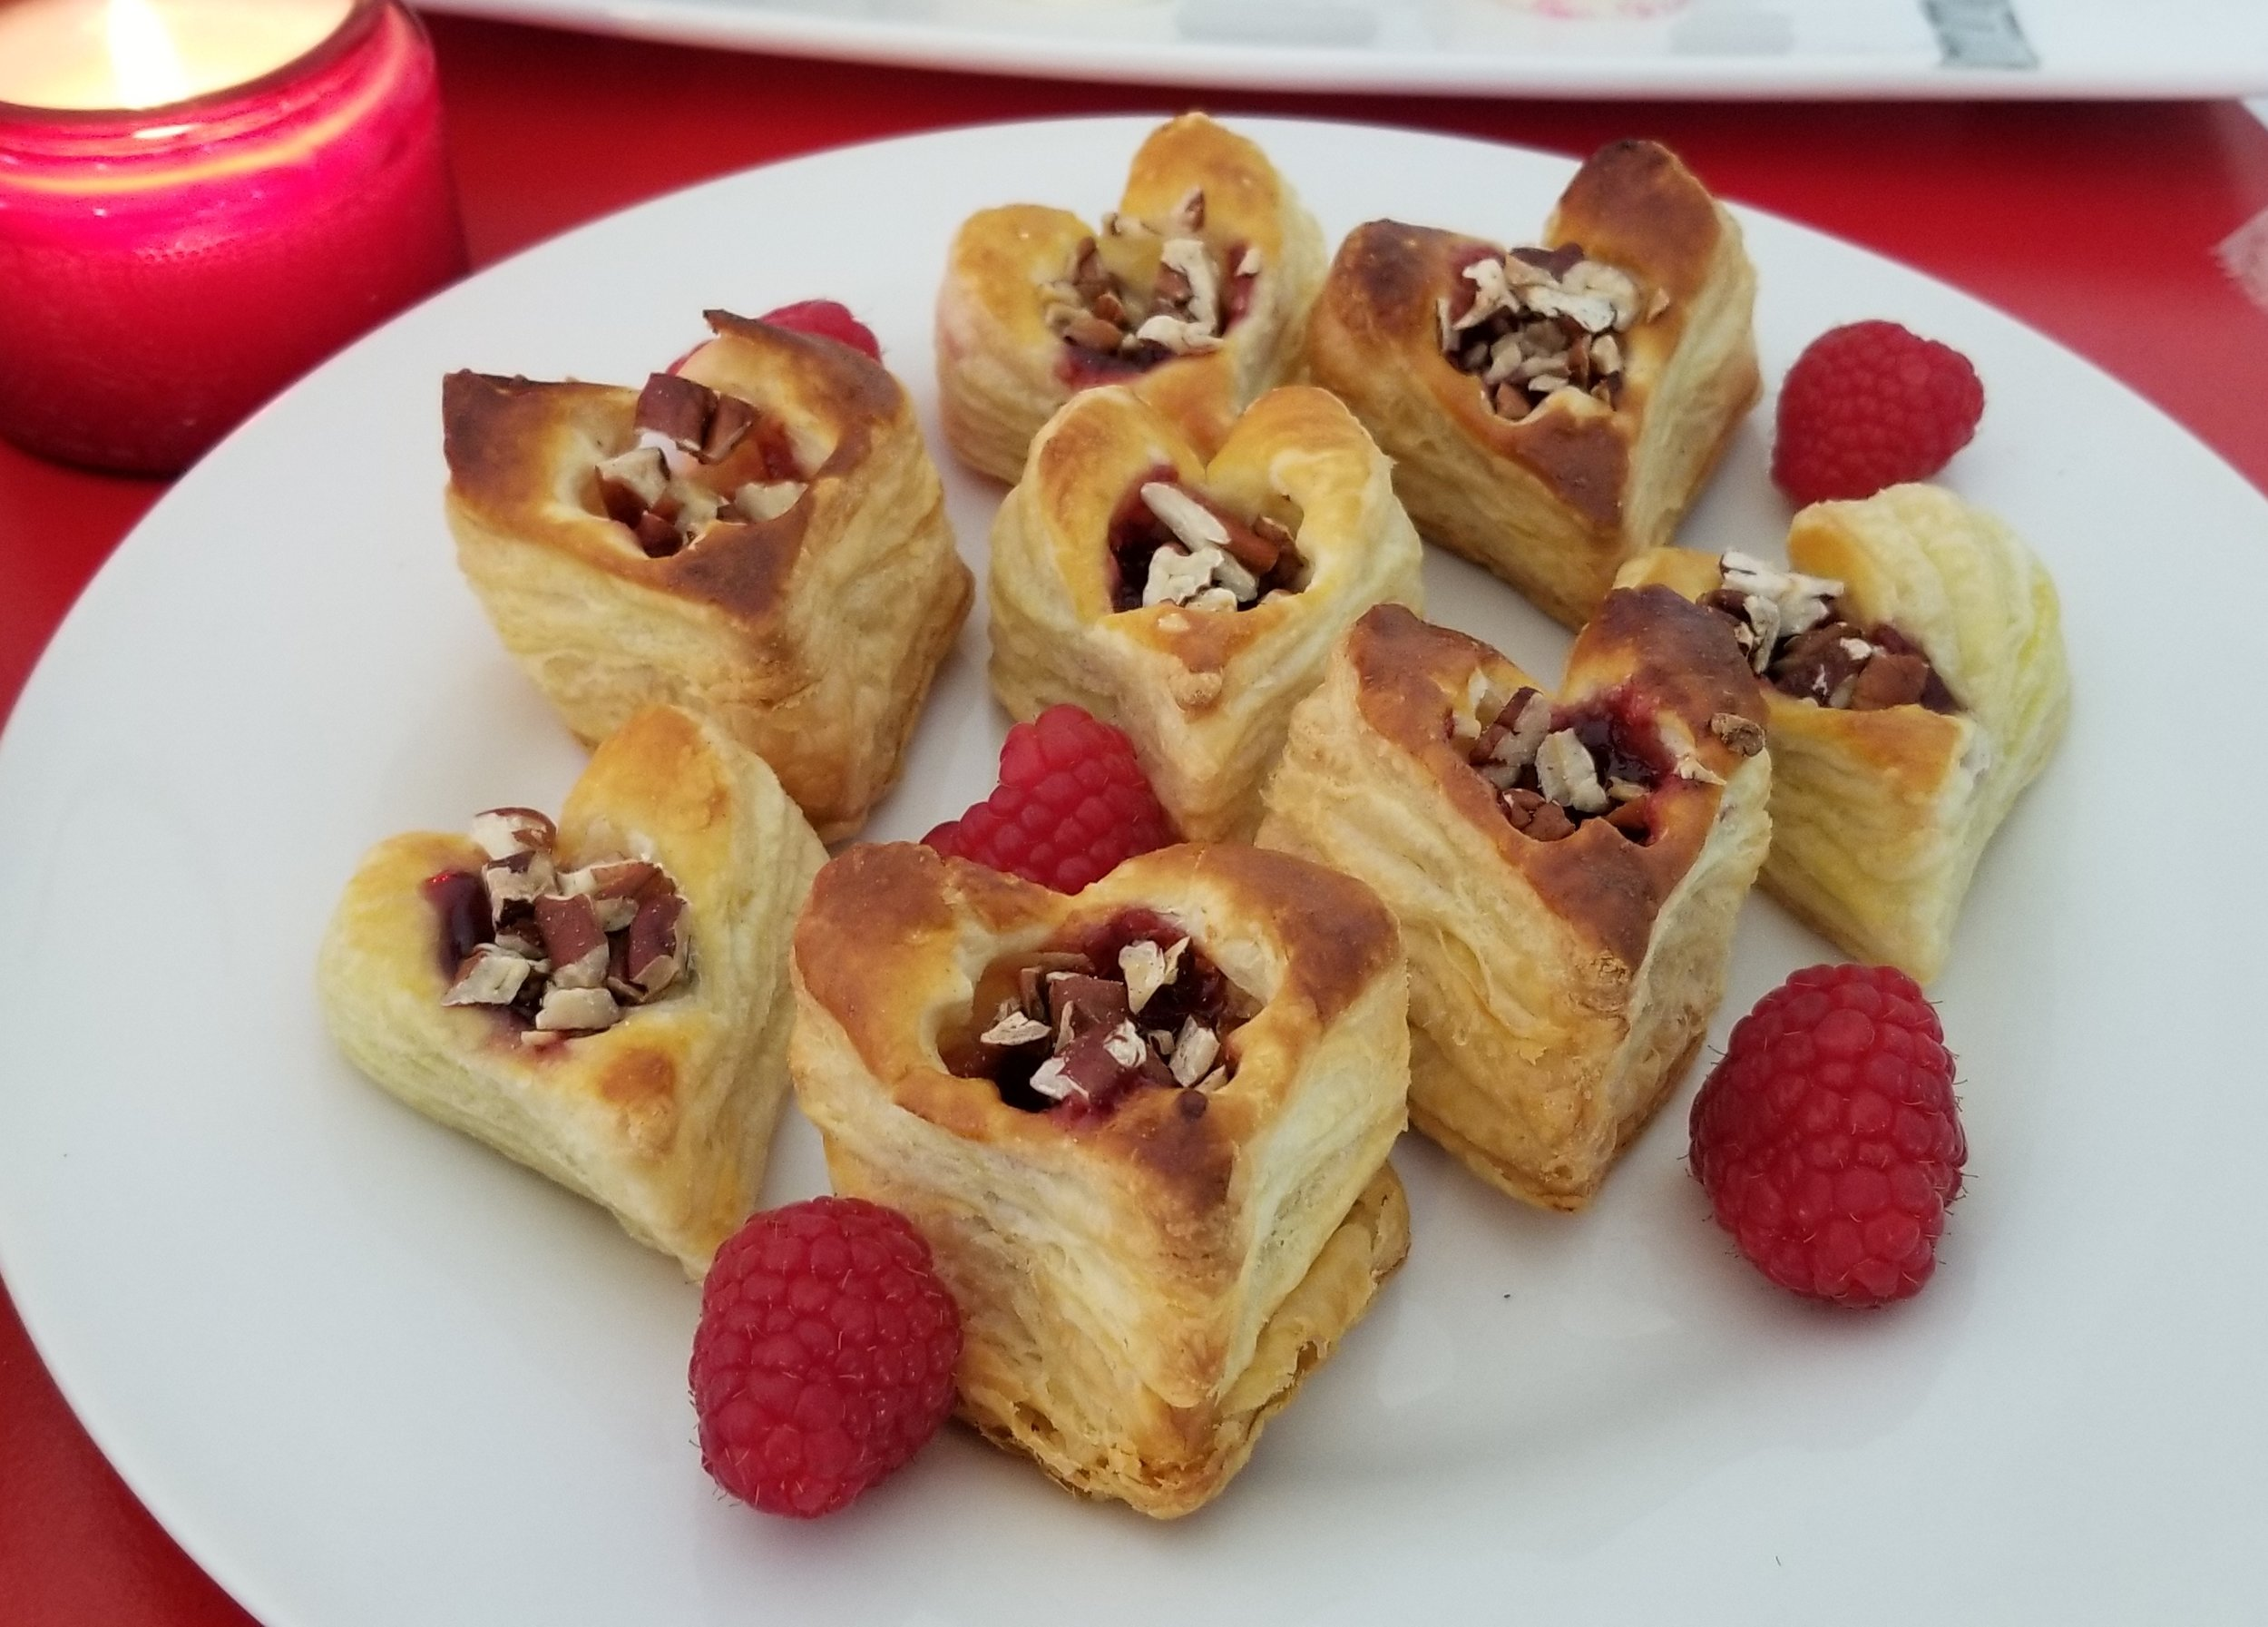 Brie and raspberry puffs made with puff pastry, brie, raspberry jam and toasted pecans.